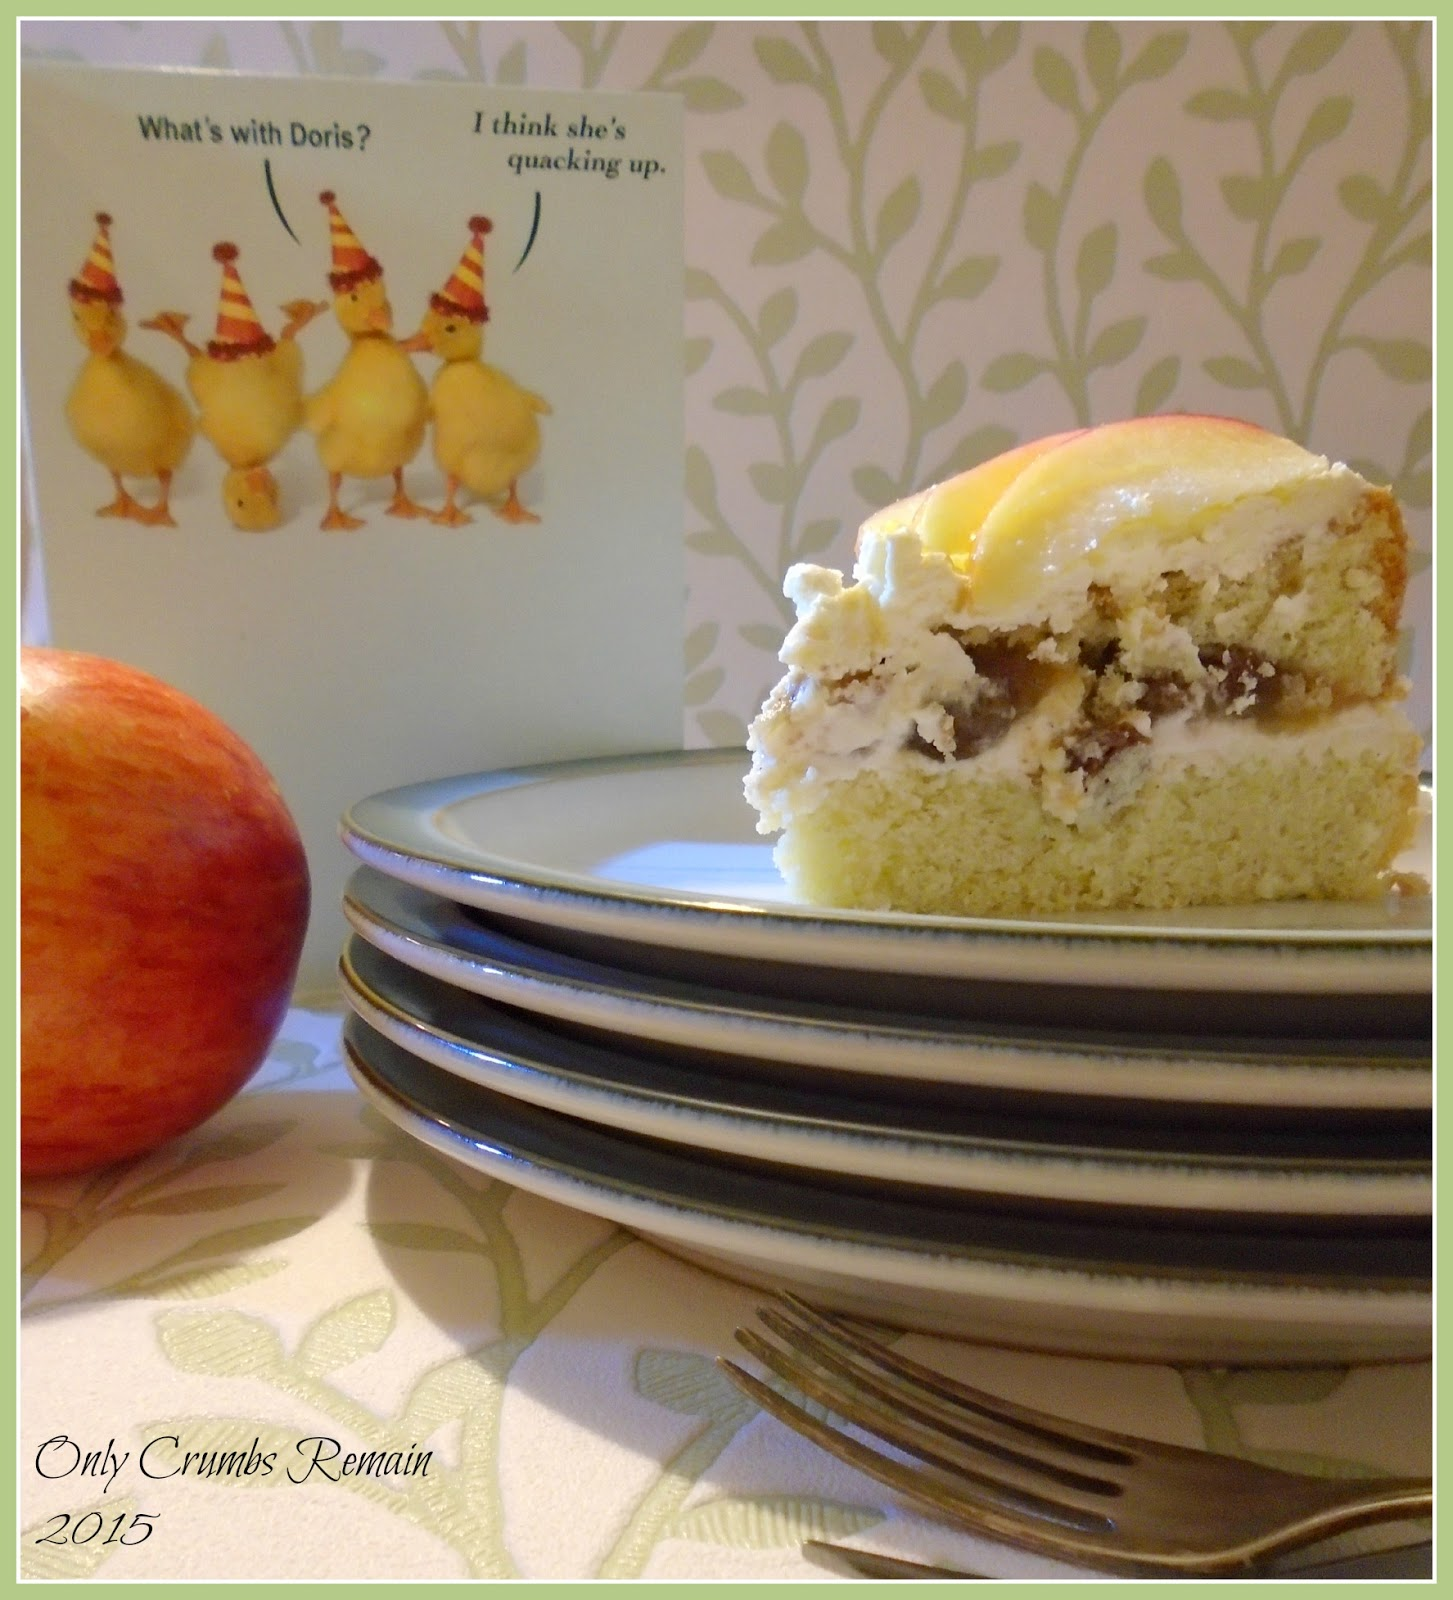 Only crumbs remain apple and cinnamon genoise cake apple and cinnamon genoise cake urtaz Gallery